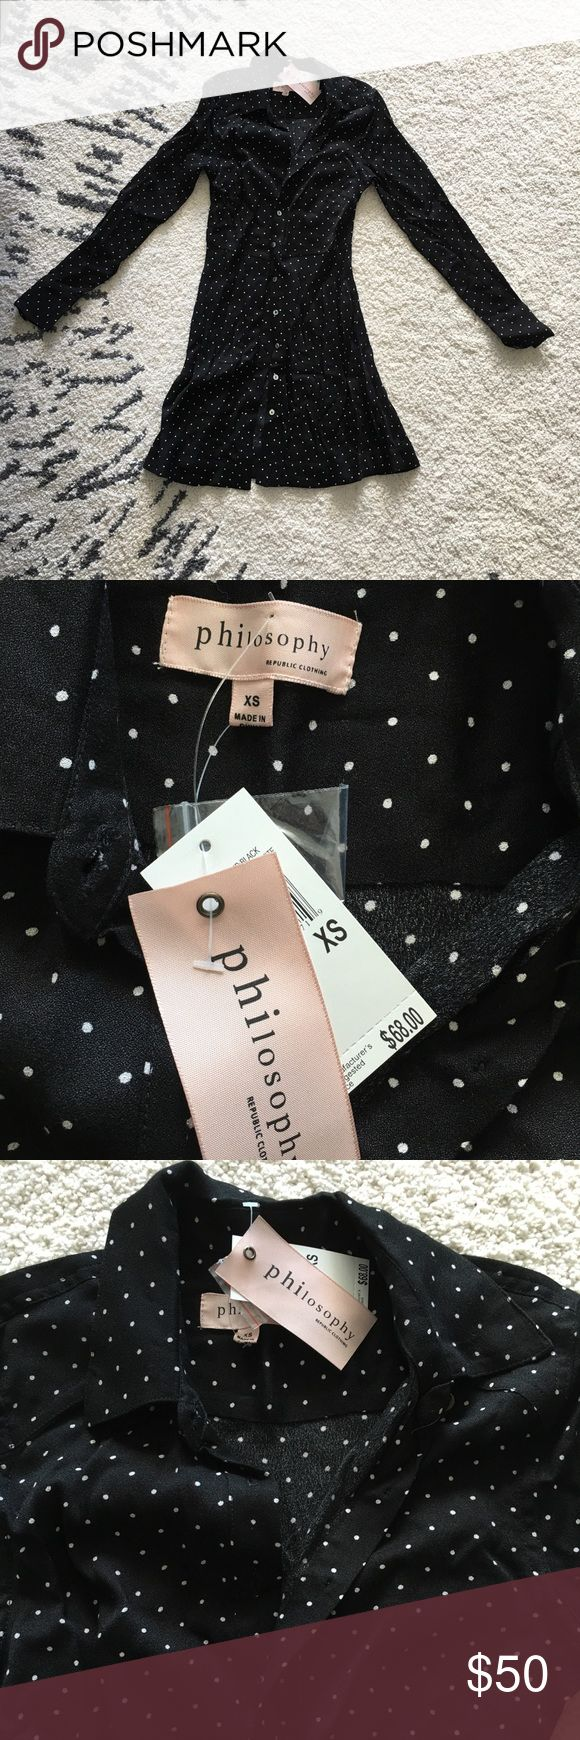 Philosophy Black Polka Dot Button Up Dress Very casual dress - great for work or a night out. Brand new with original tags!! Never worn and no flaws! Philosophy Dresses Long Sleeve